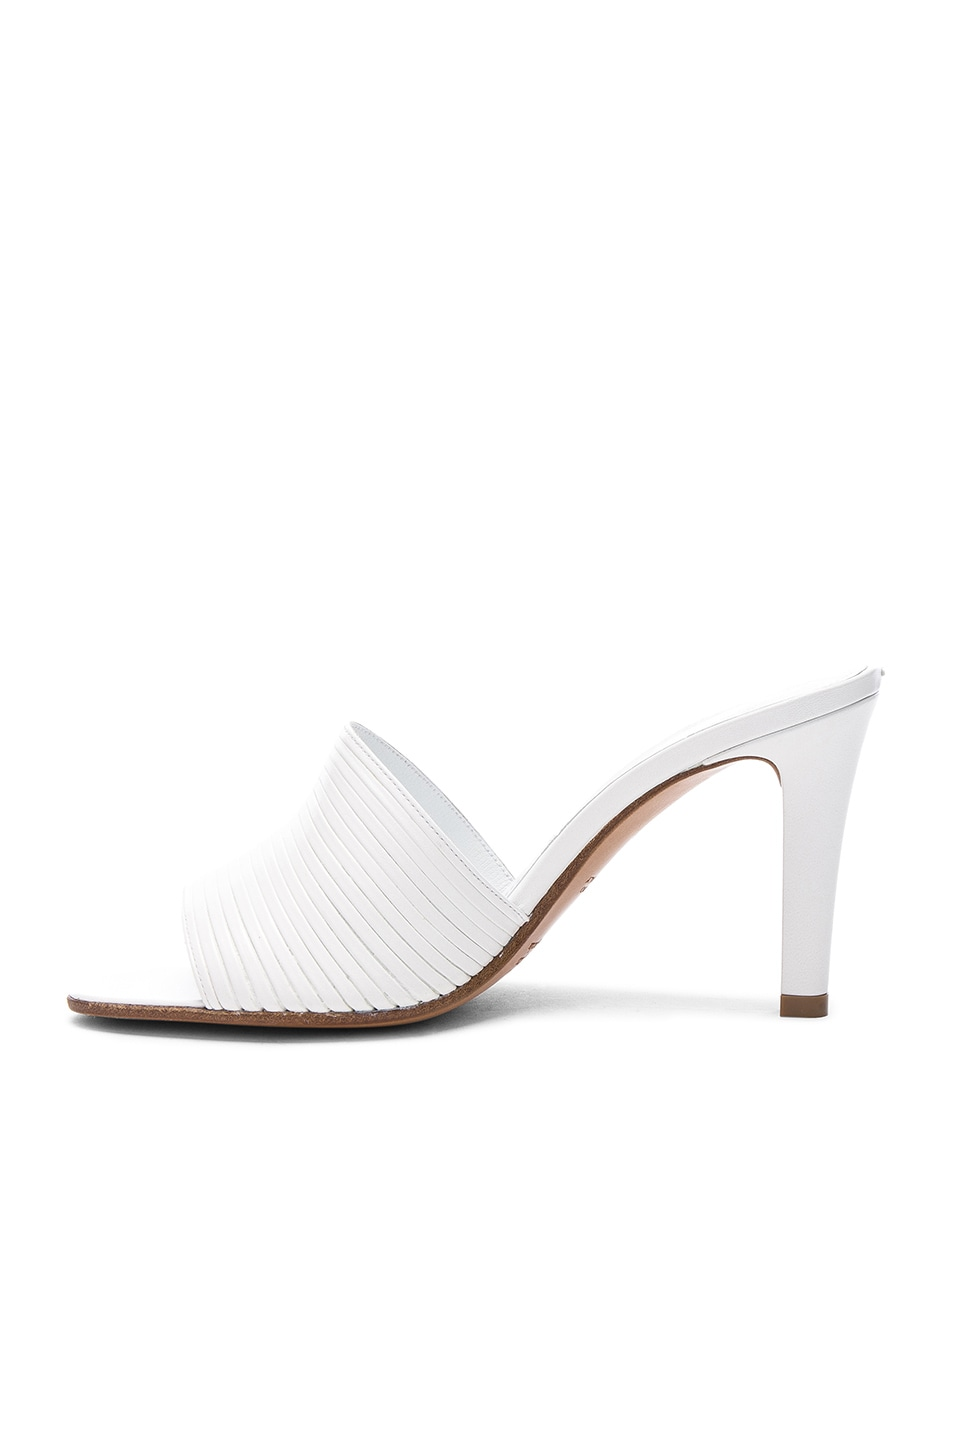 Image 5 of Maison Margiela Leather Heels in White